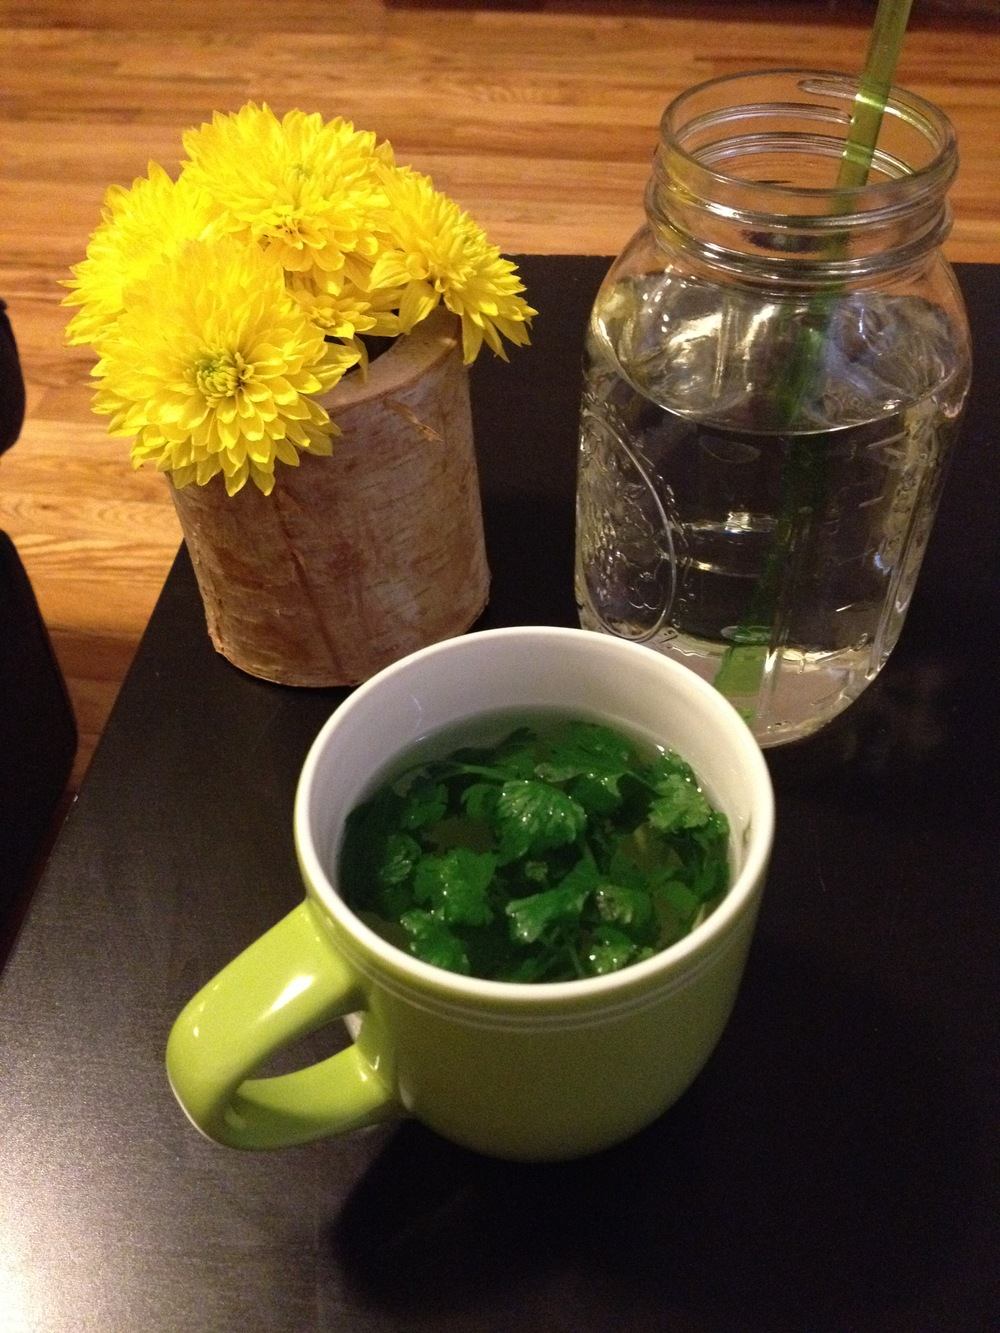 #29 Ginger or Parsley Tea